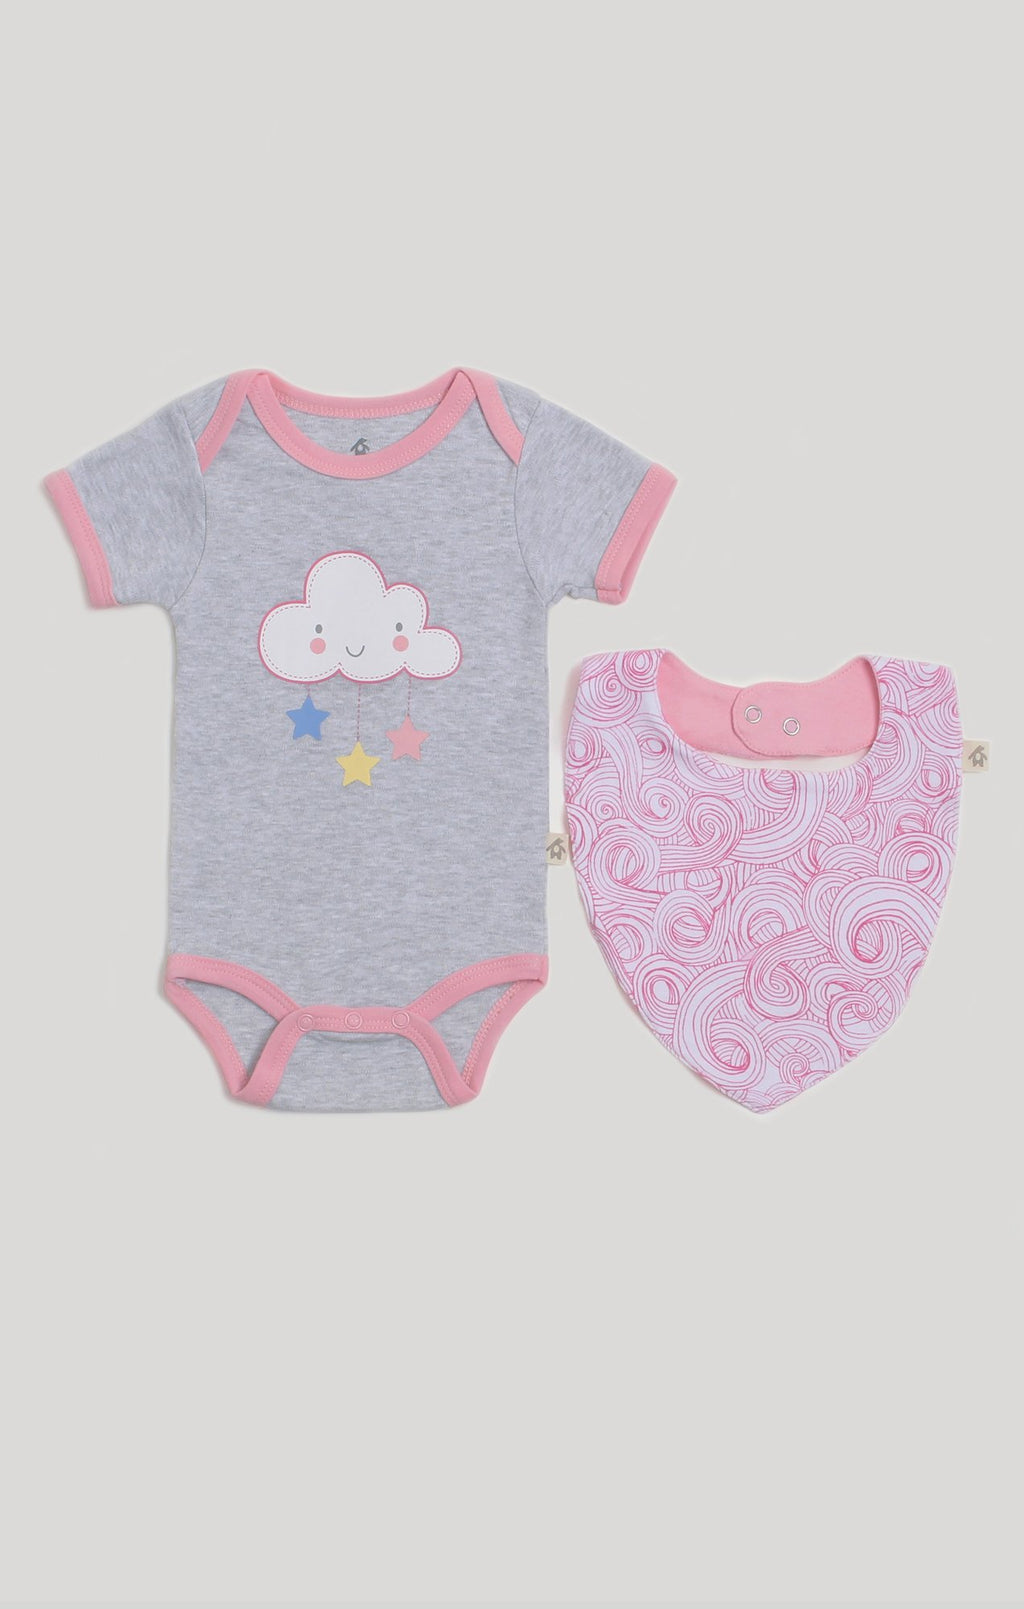 Baby Clothes | Pink Cloud Bib & Baby Bodysuit Set